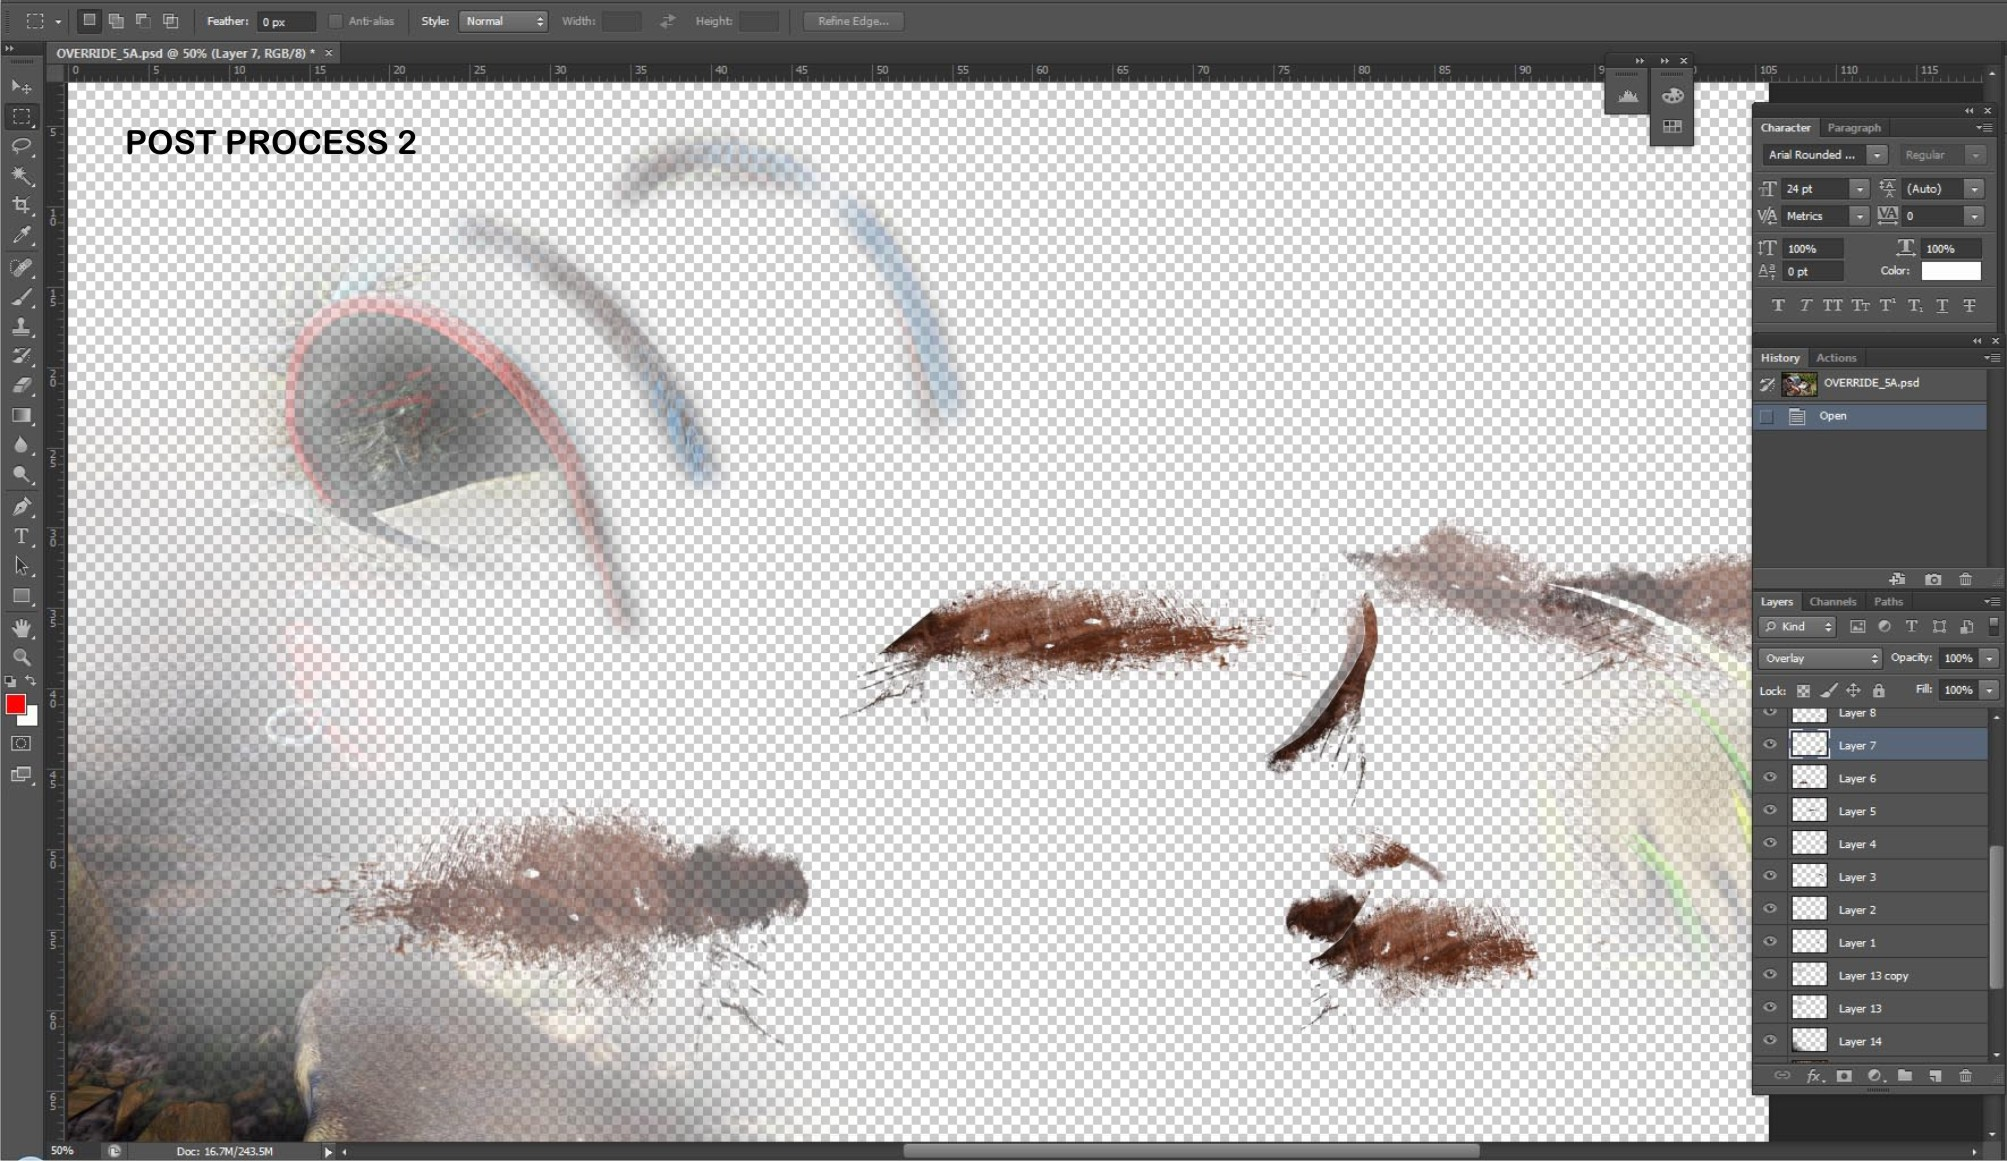 my individual layer and masking of different texture